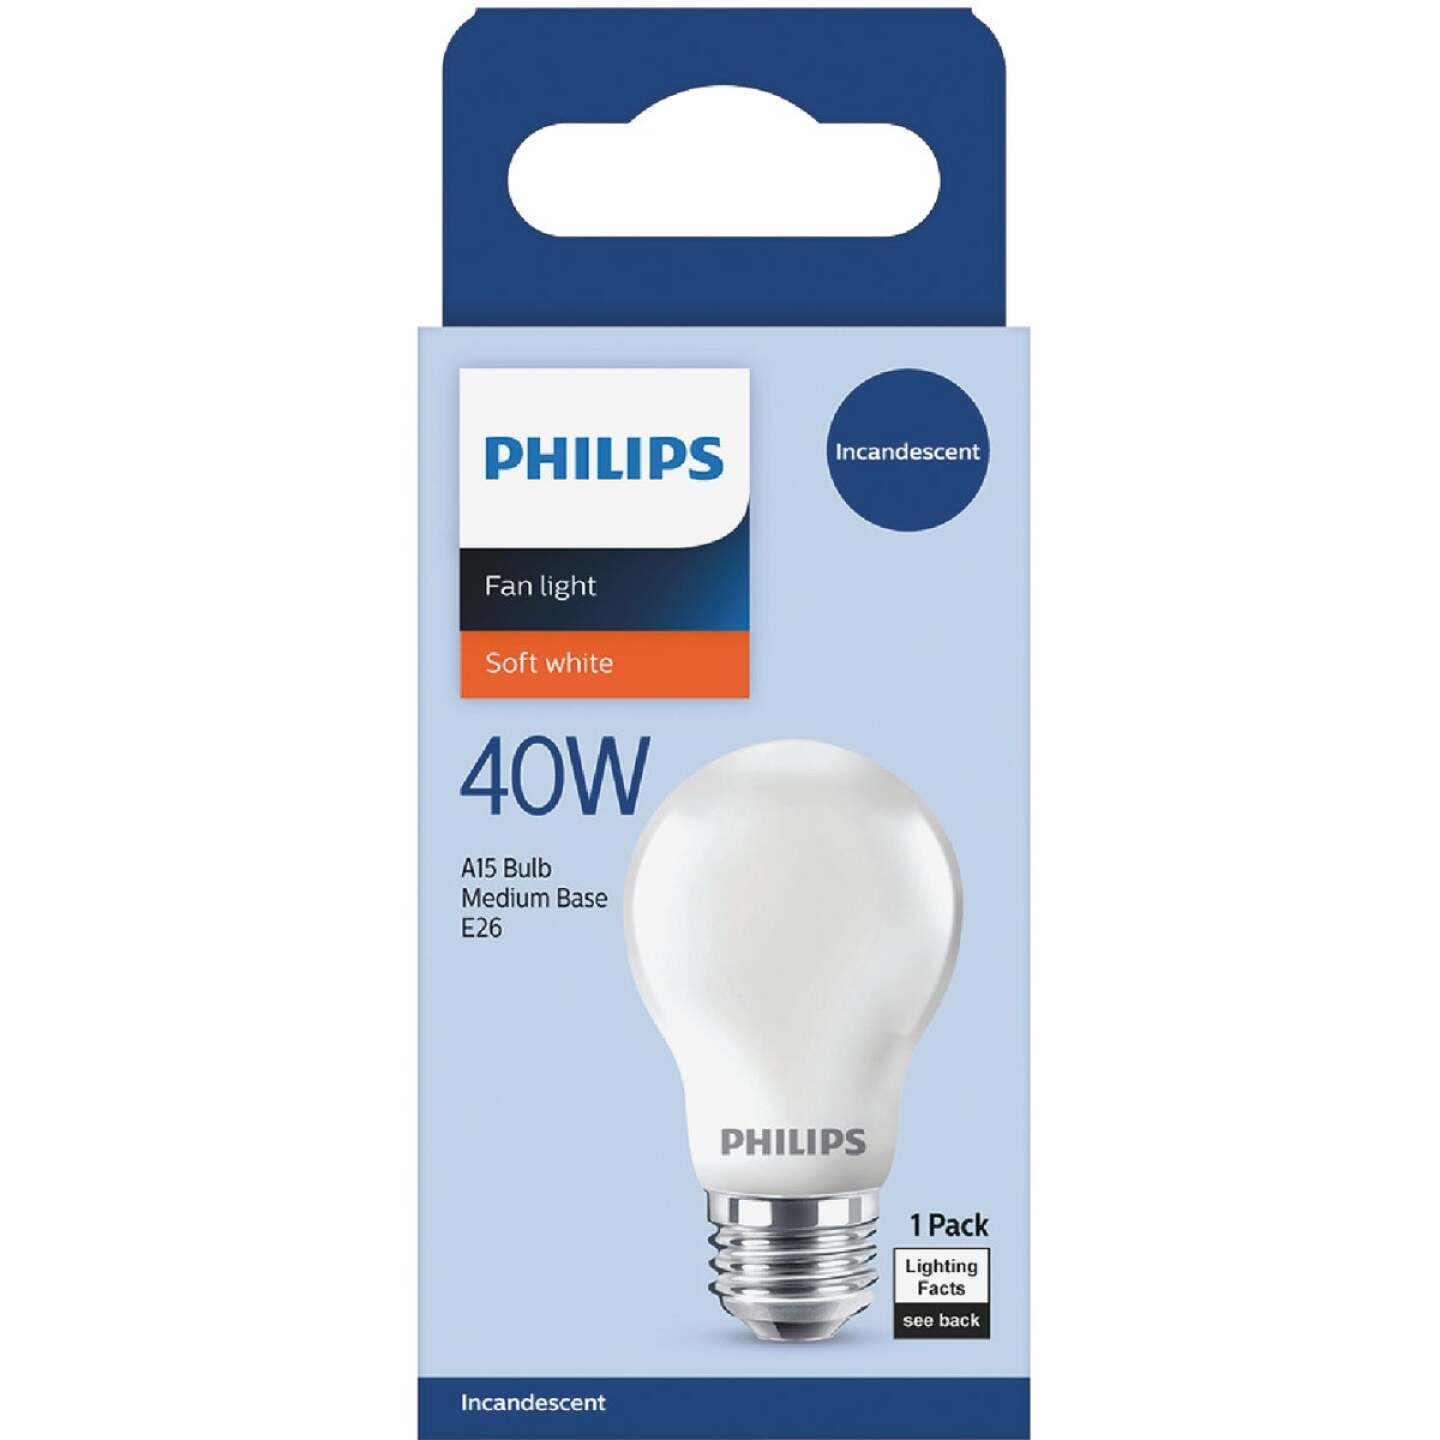 Philips DuraMax 40W Frosted Medium A15 Incandescent Ceiling Fan Light Bulb Image 2